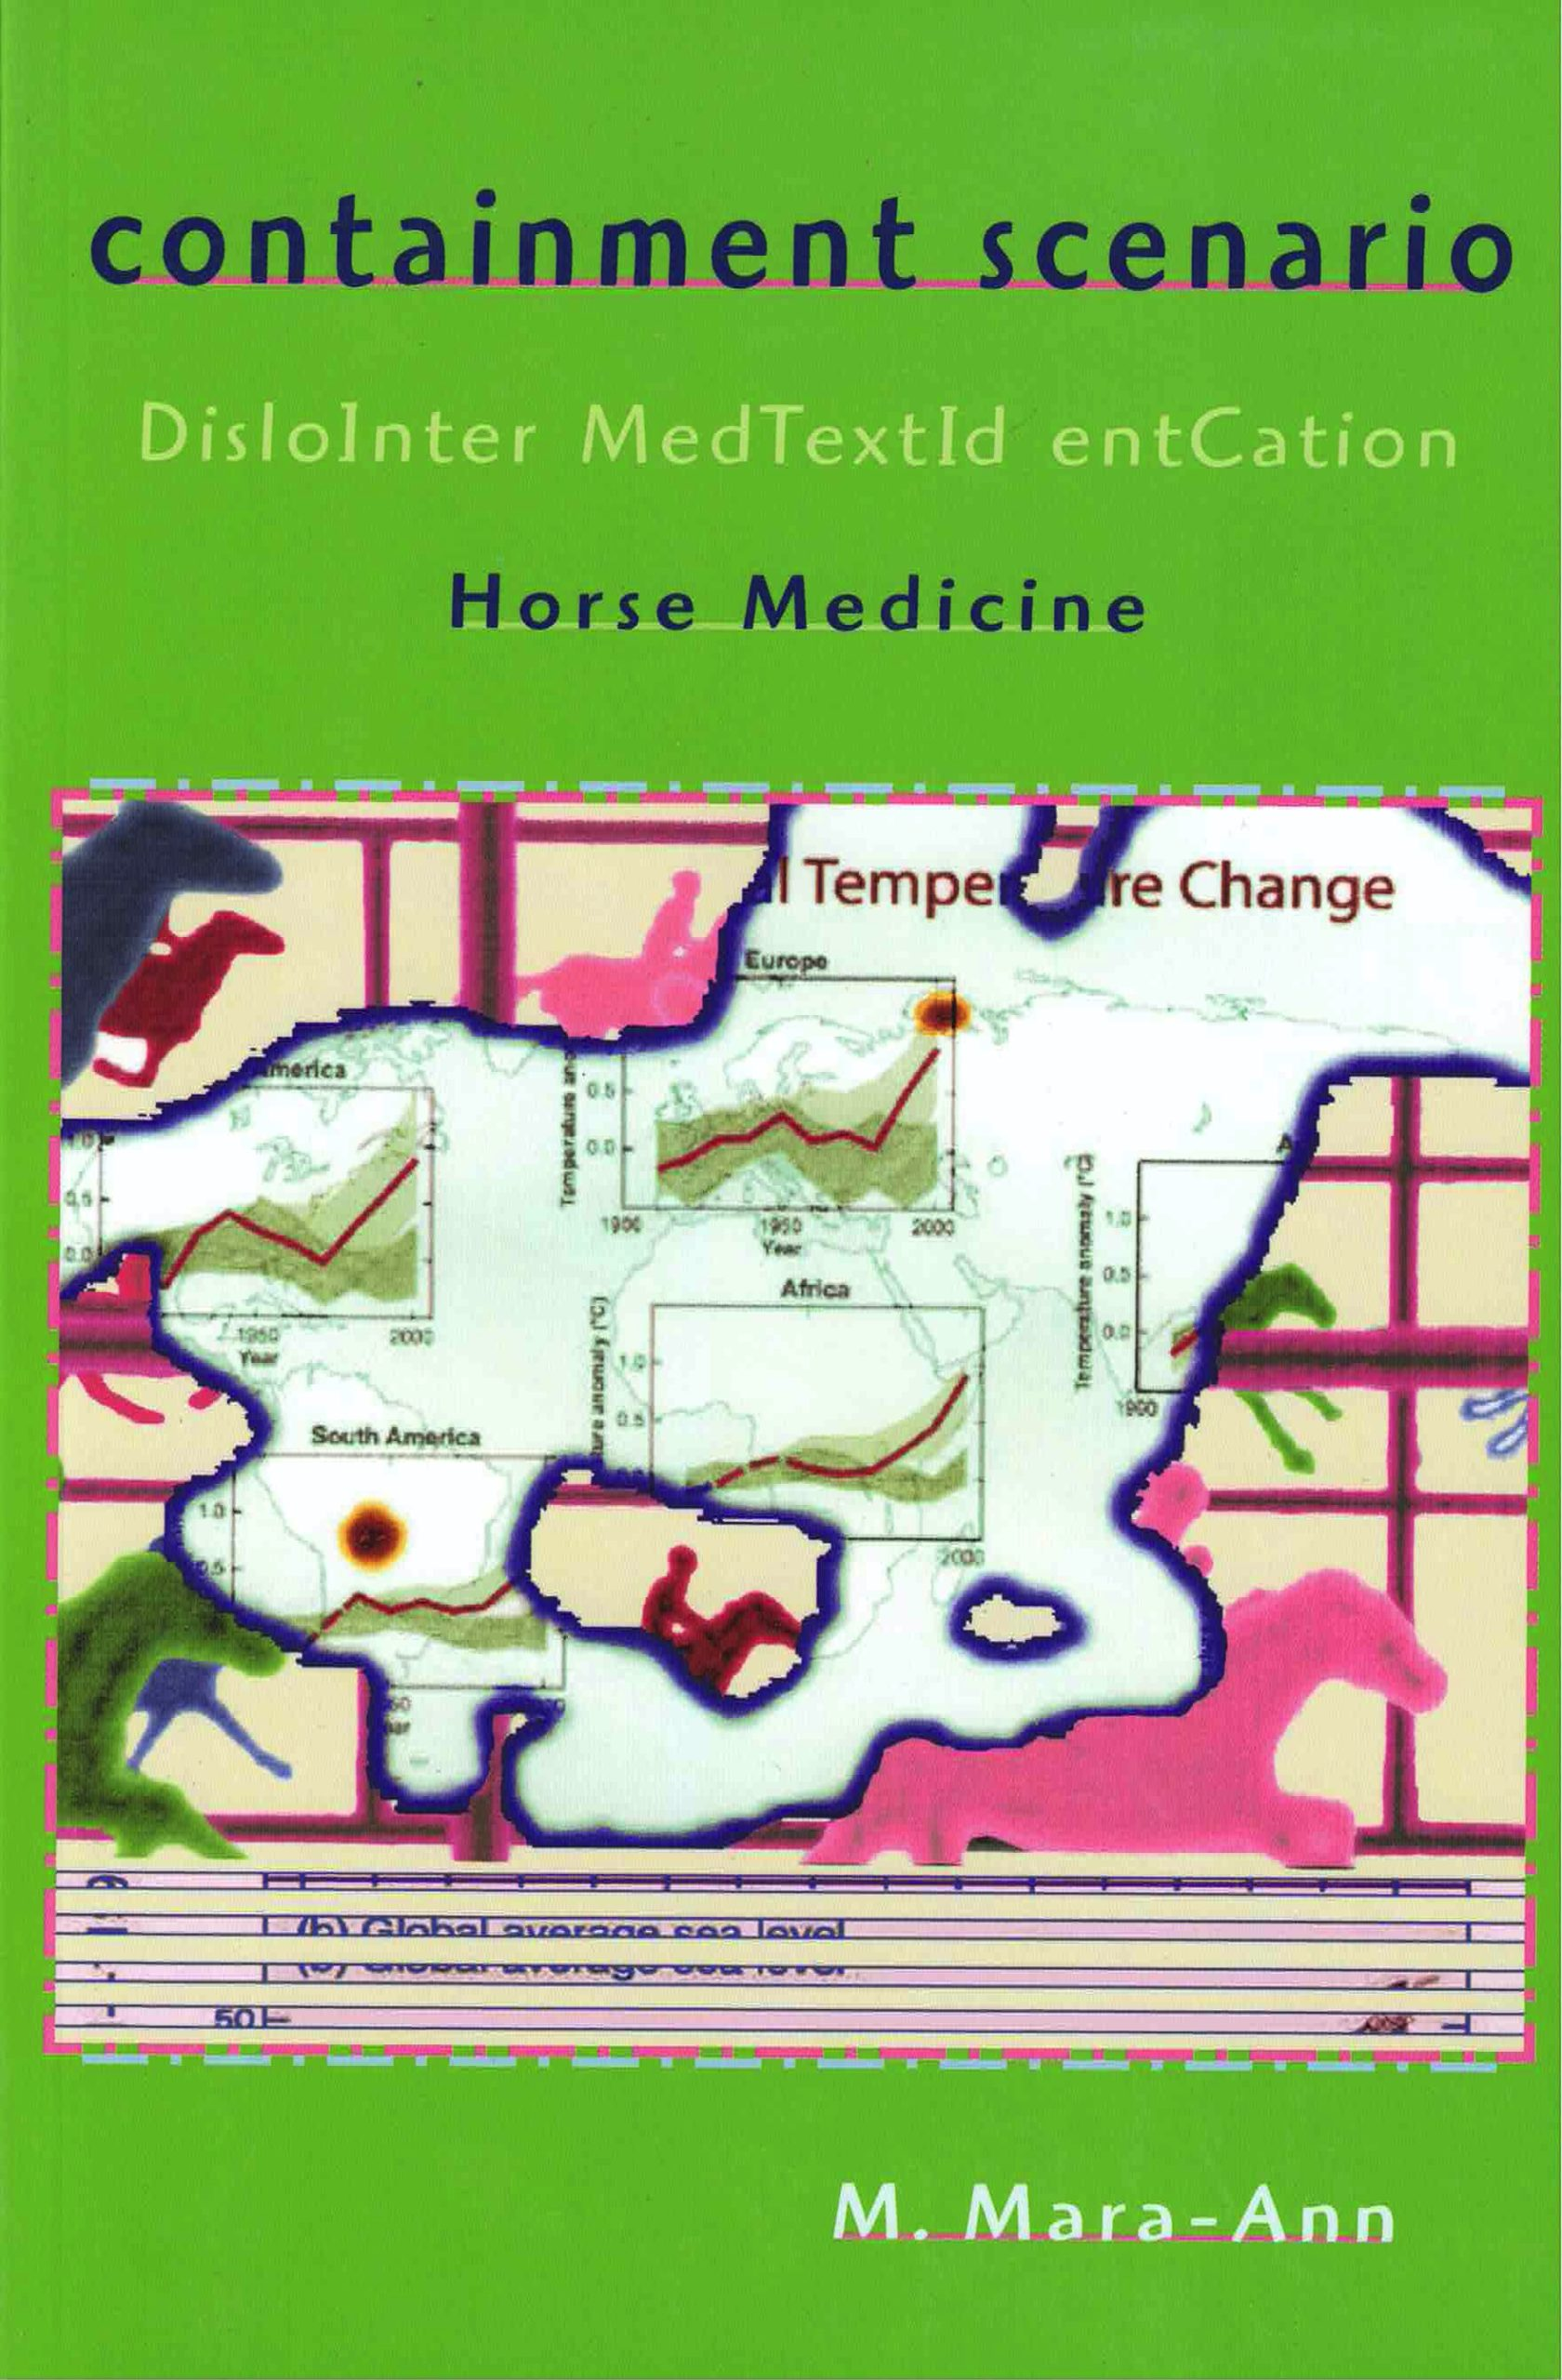 cover of Containment Scenario by M. Mara-Ann; apple-green background with large square image of cutout of person riding a racehorse filled in with temperature change charts, on top of colorful images of people riding racehorses